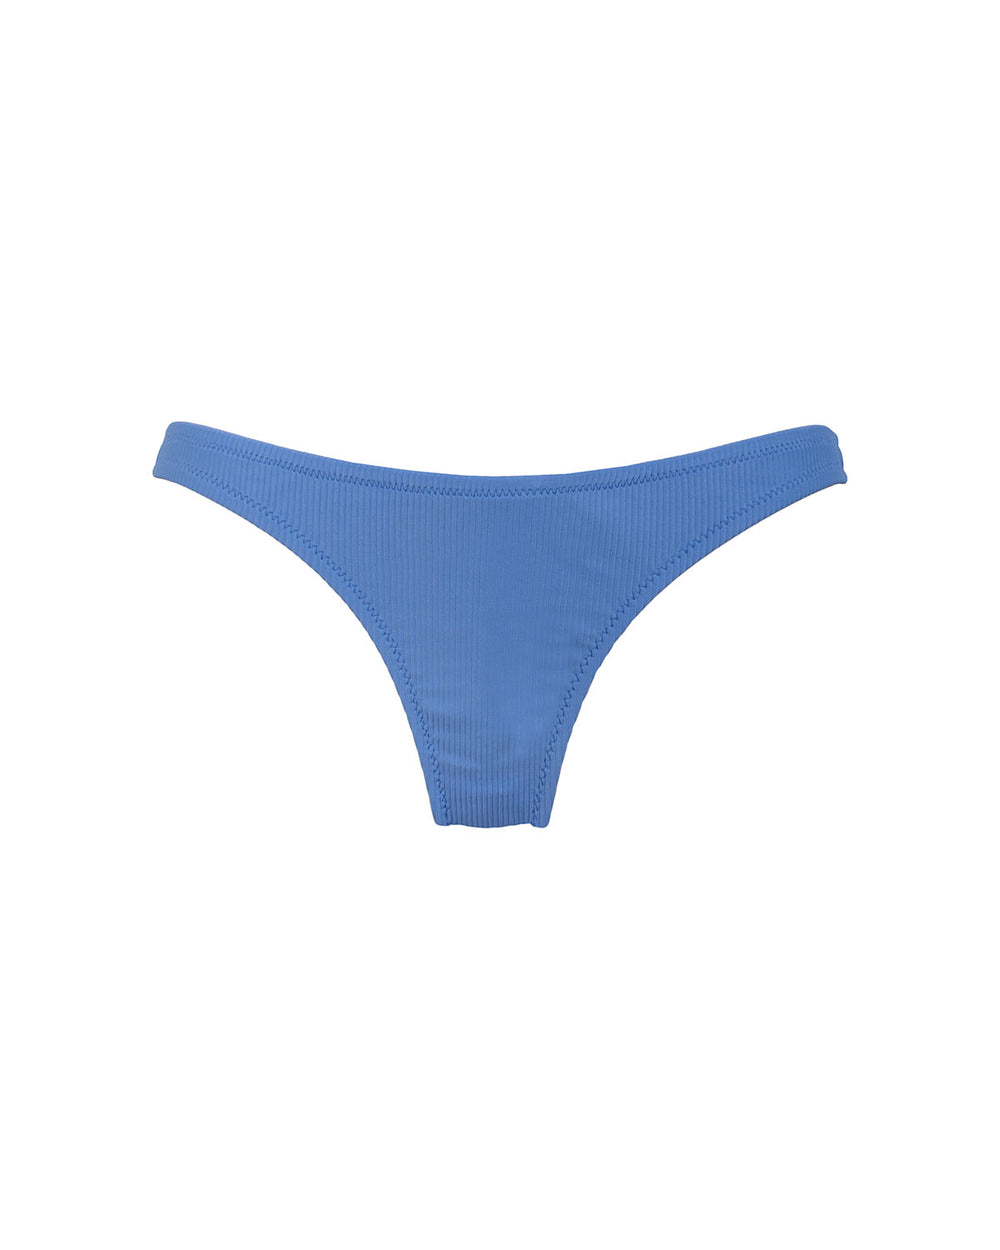 Effie Bottom - Periwinkle Rib - Static Swimwear - Modern Minimalist Bikinis - Made in Los Angeles